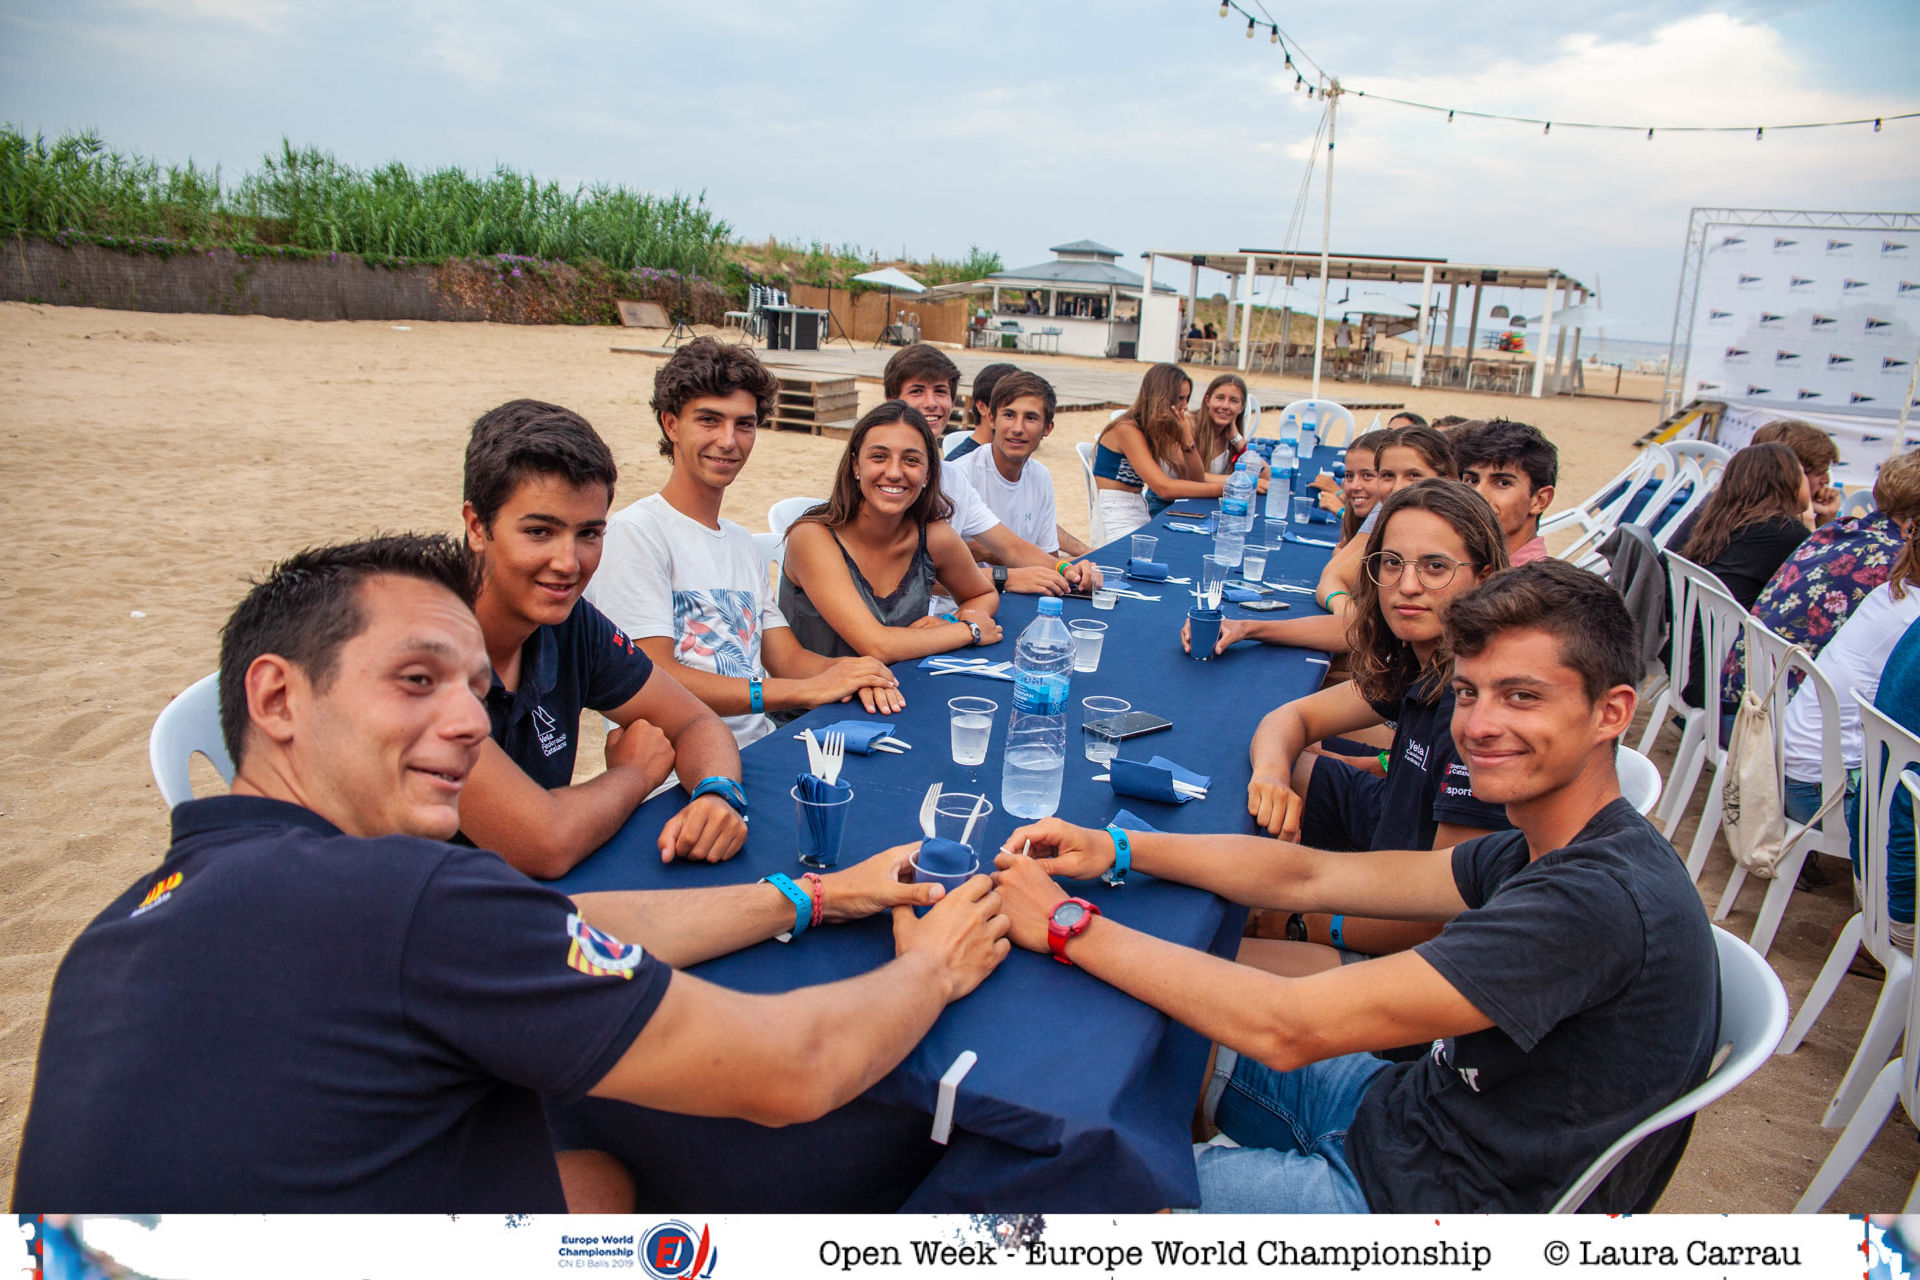 The sailors from Blanes Gal·la, Gemma, Oscar and Pol finish the world class European championship at the El Balís Sailing Club